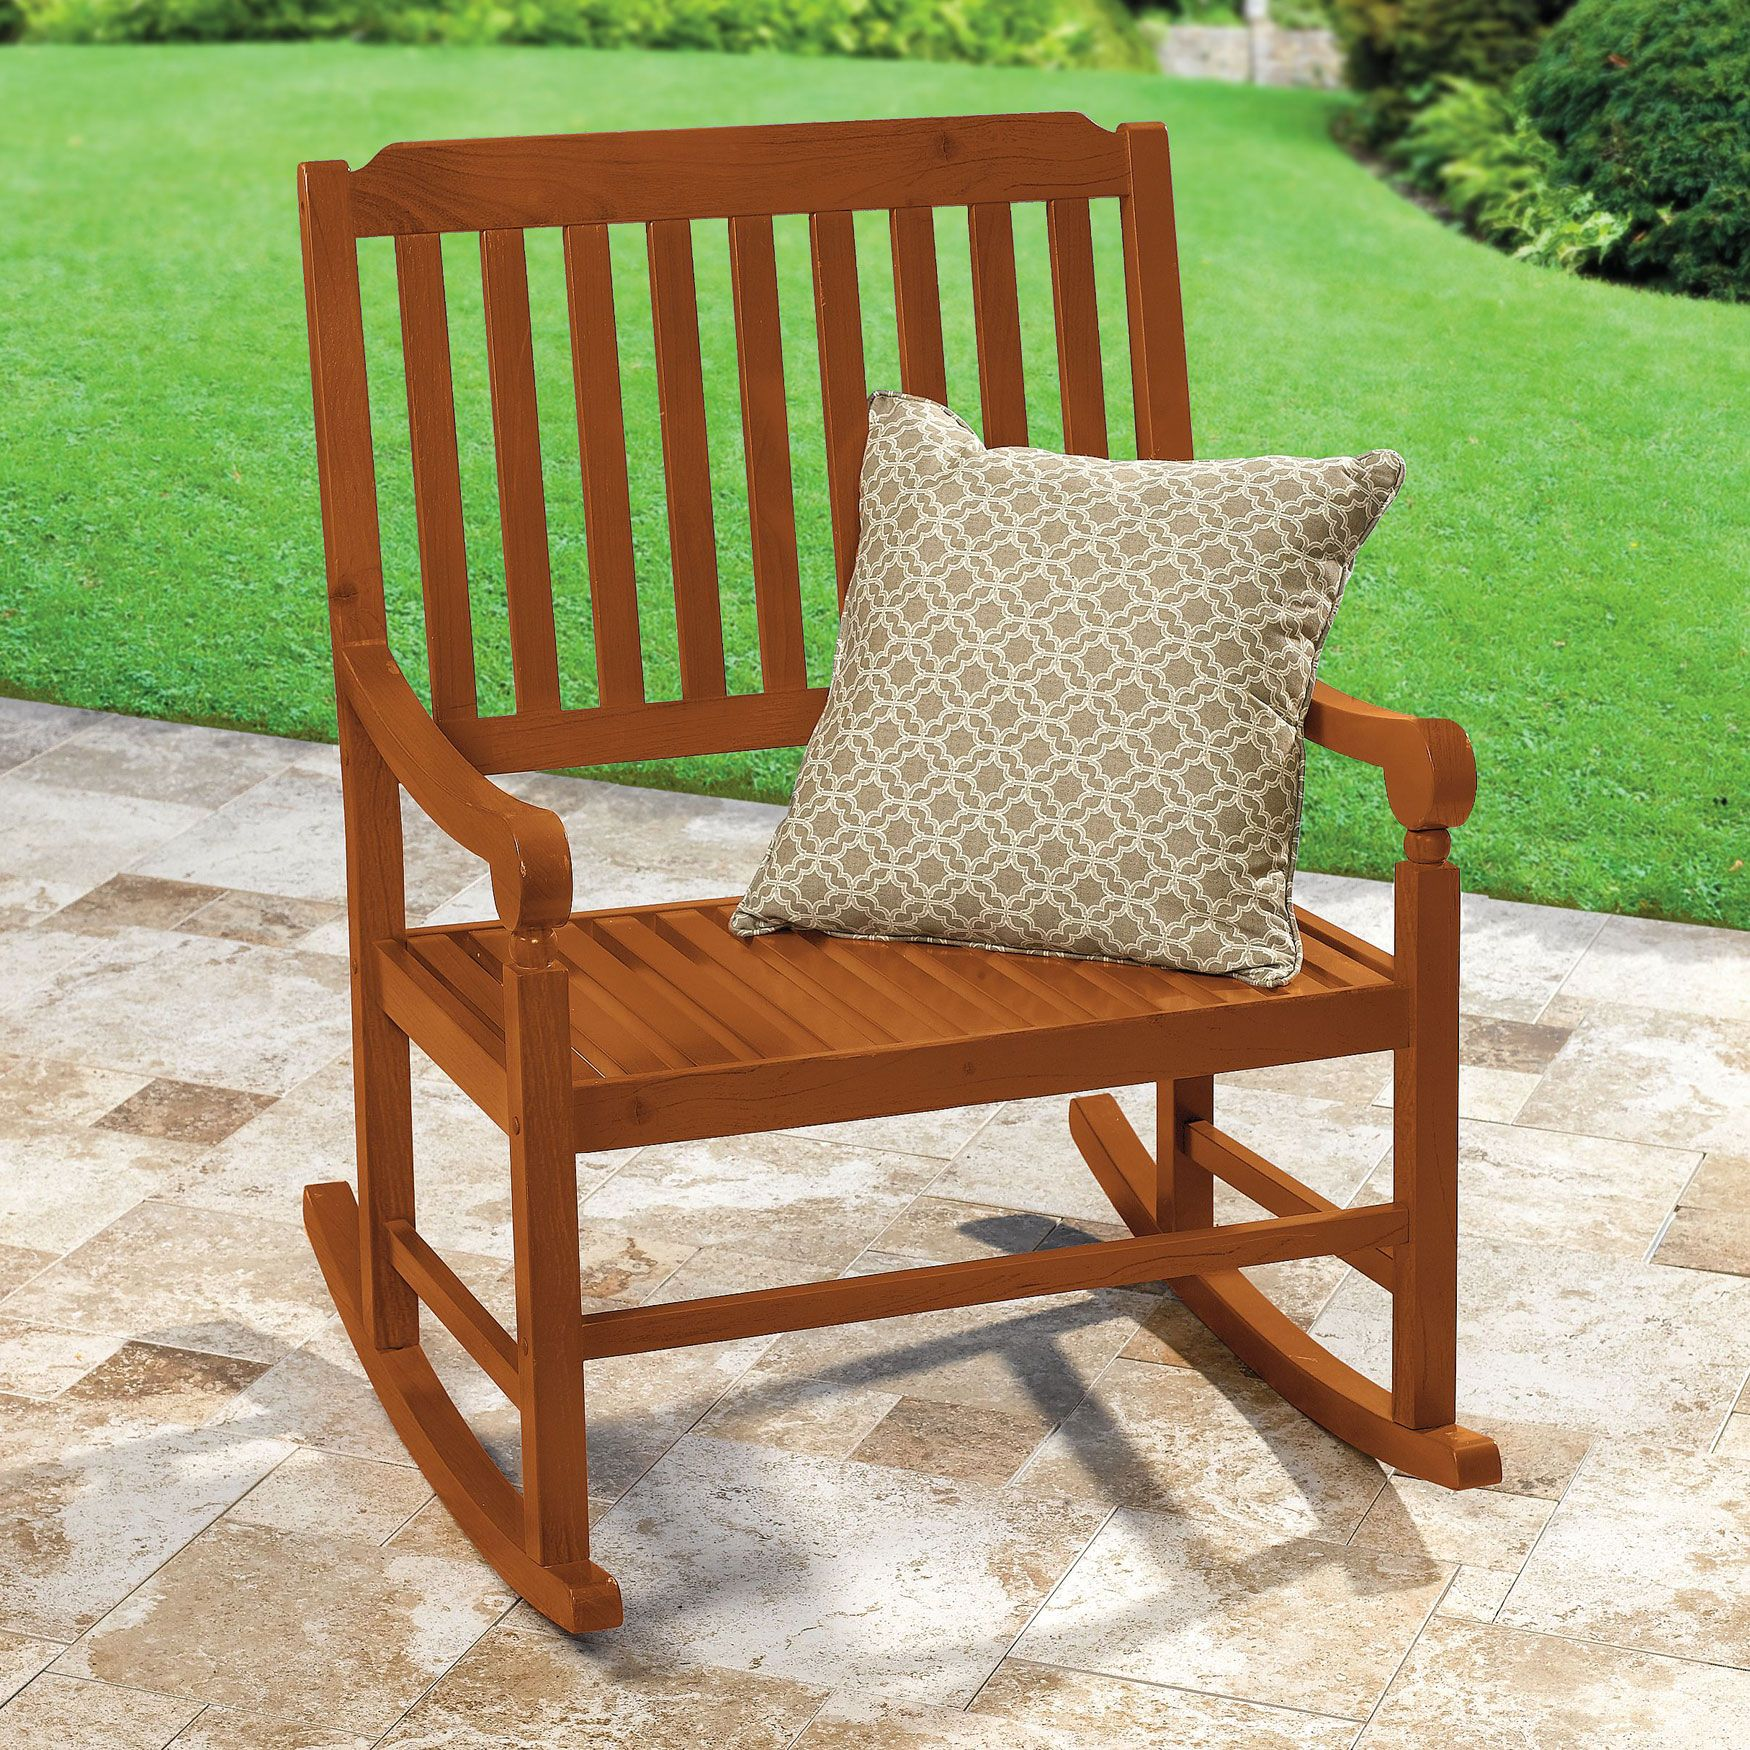 Extra Wide Outdoor Wooden Rocking Chair Patio Furniture